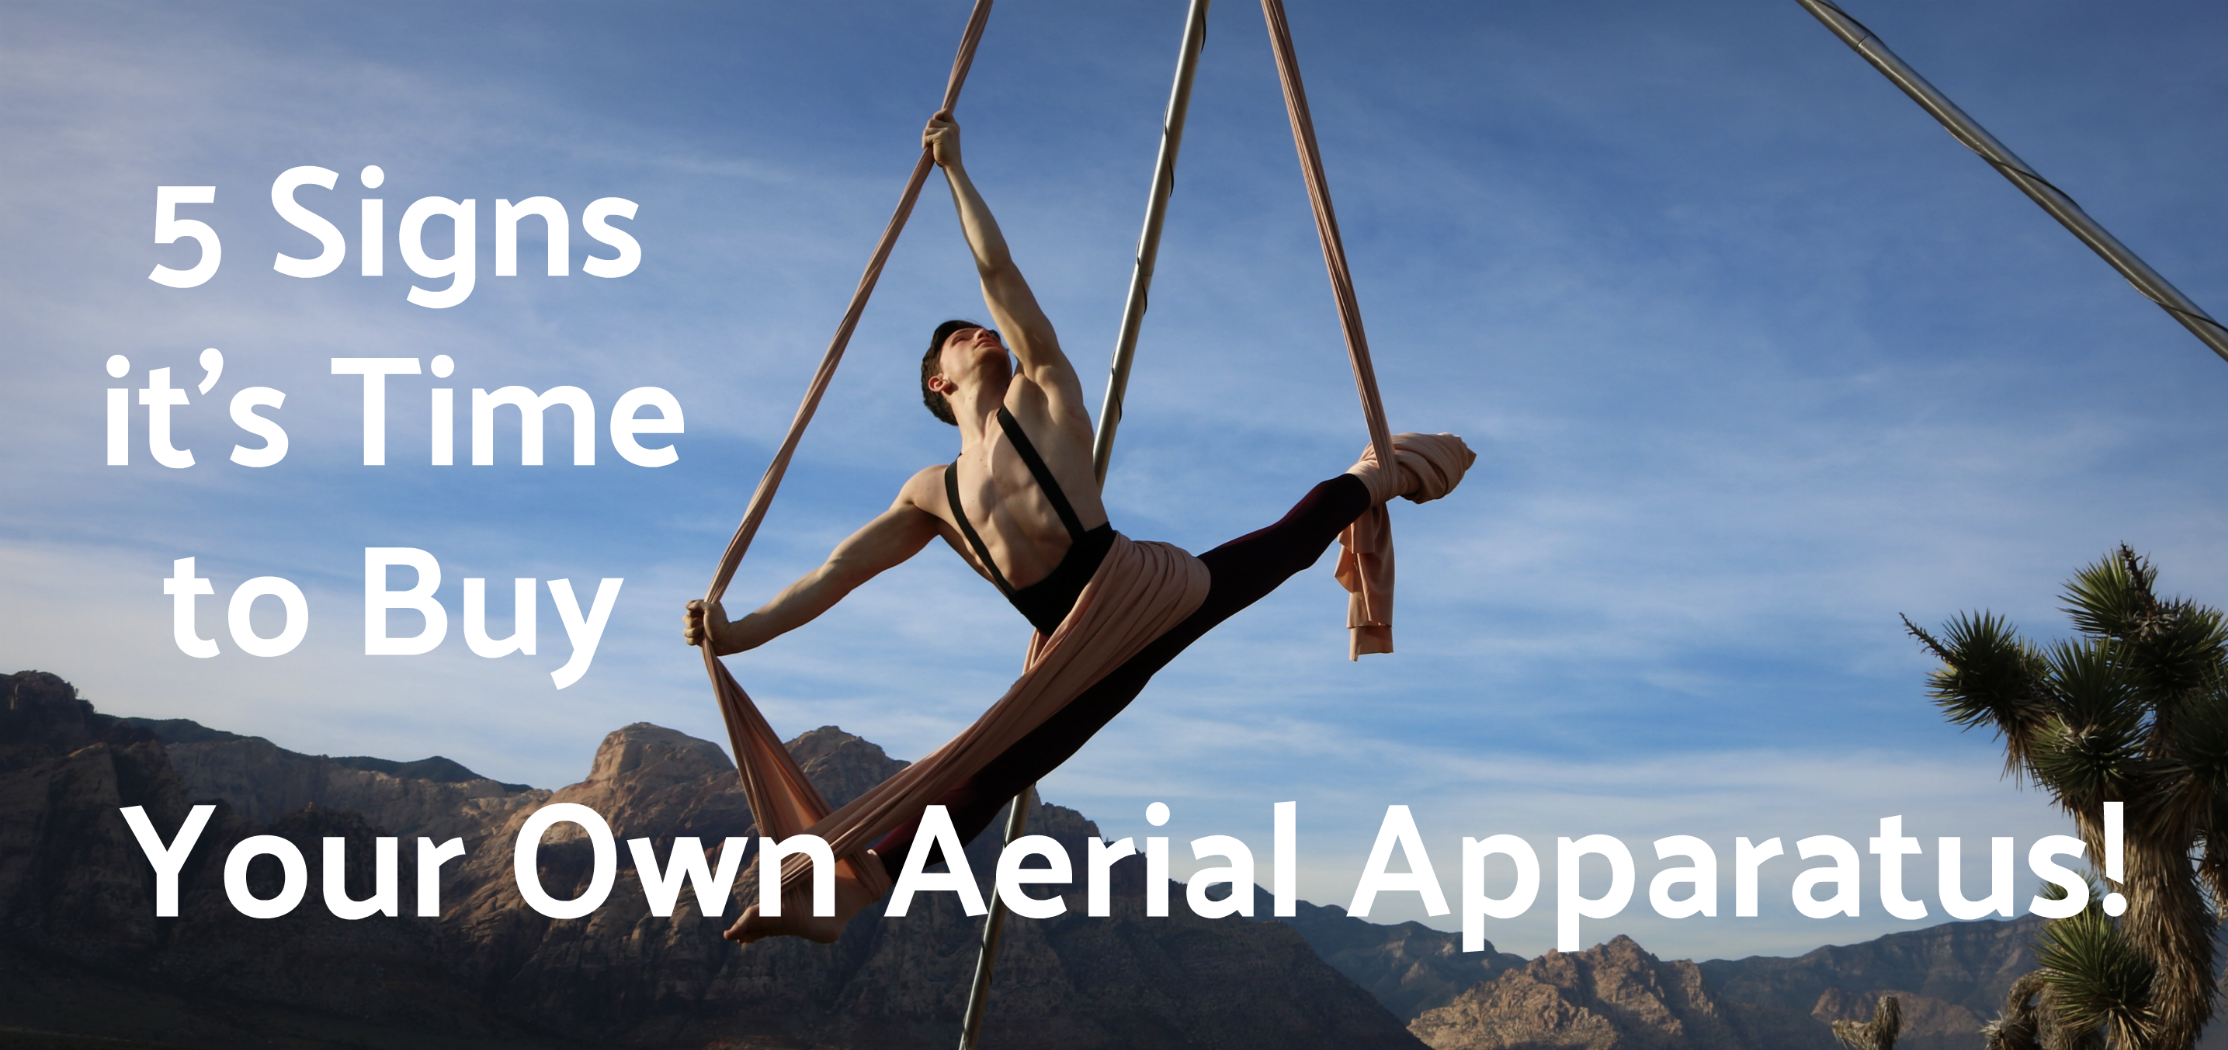 5 Signs it's Time to Buy Your Own Aerial Apparatus